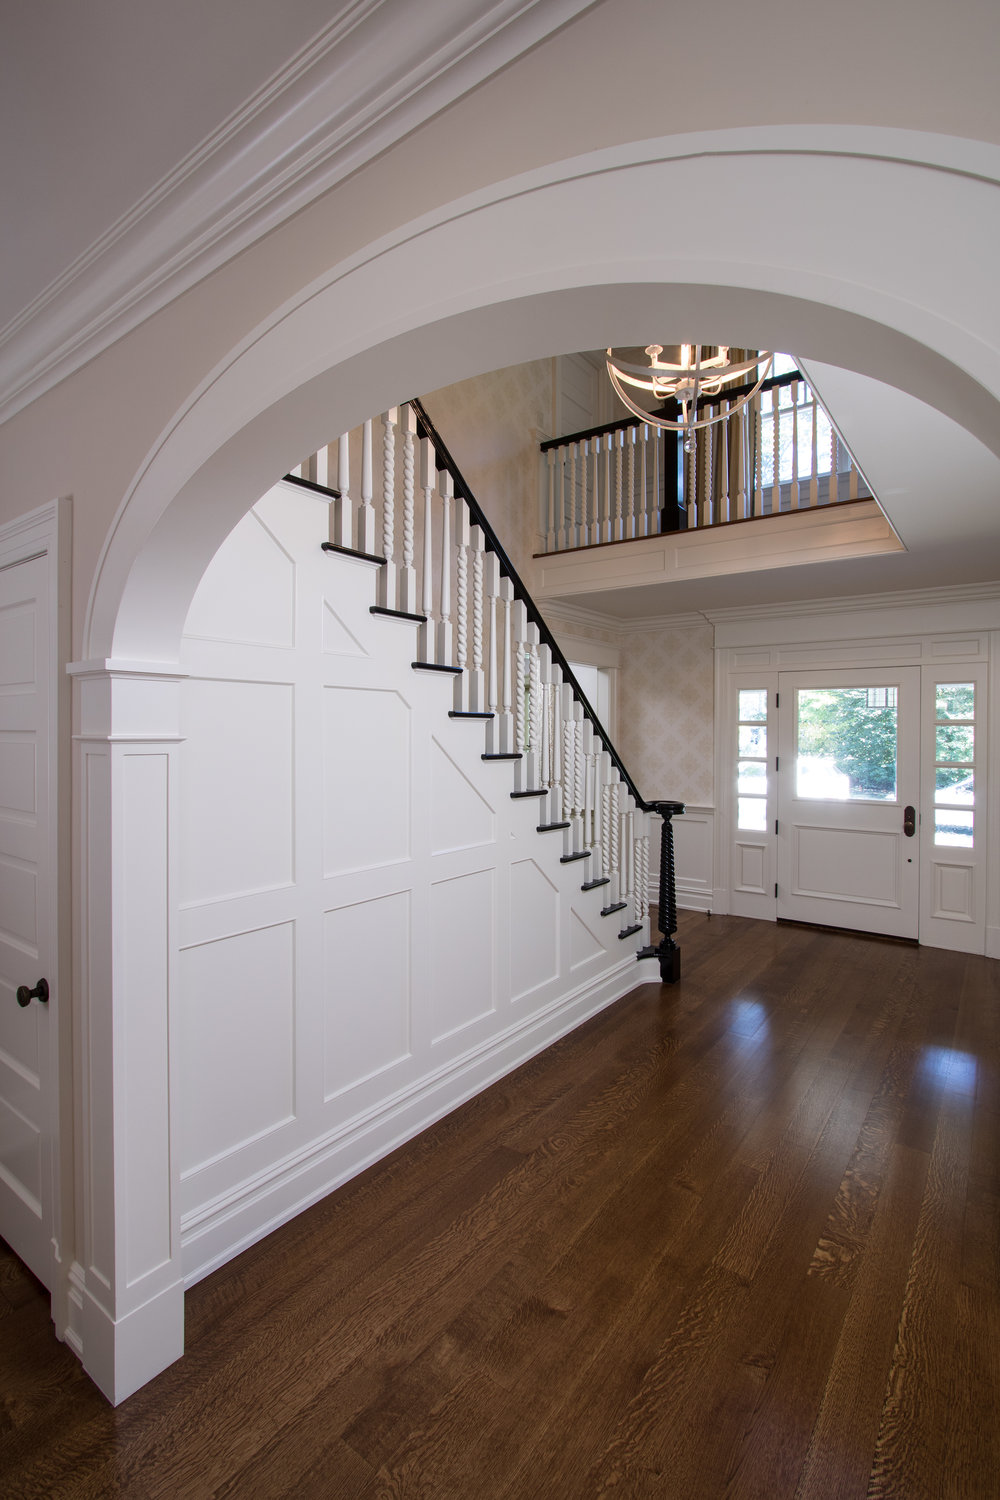 New arched openings define the reconfigured stair and foyer.